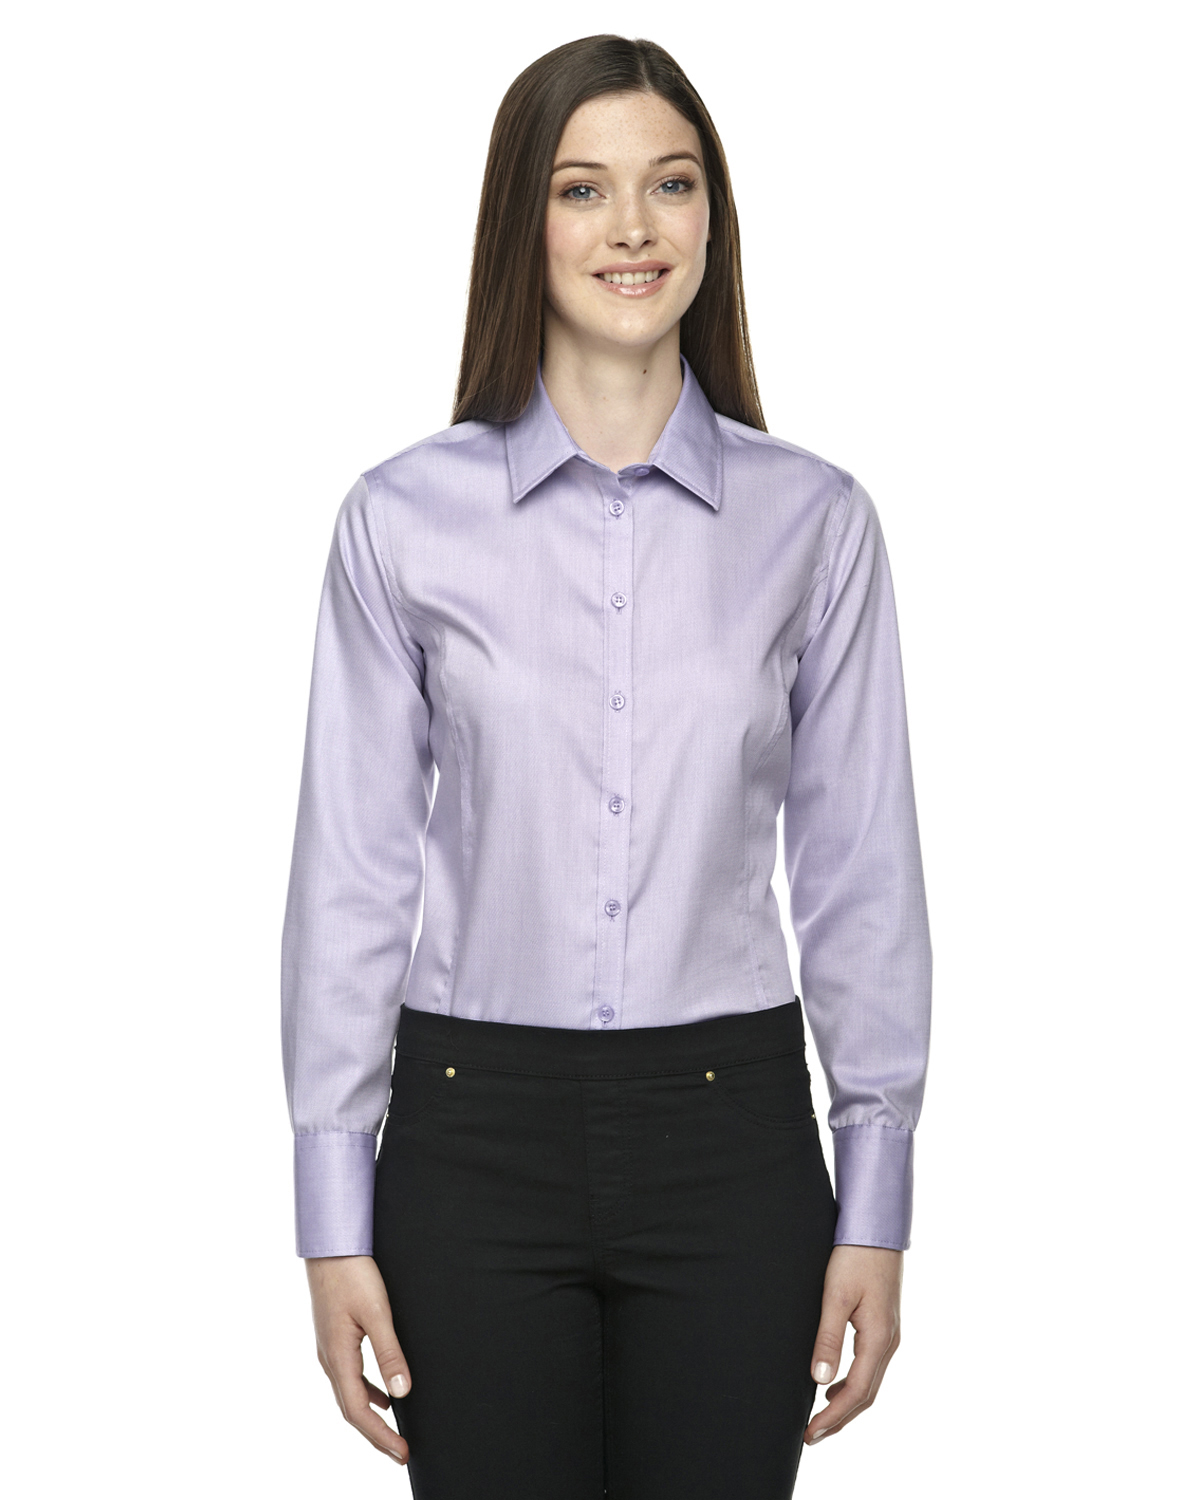 North End Sport Blue 78673 Ladies Twill Shirt Shirtmax